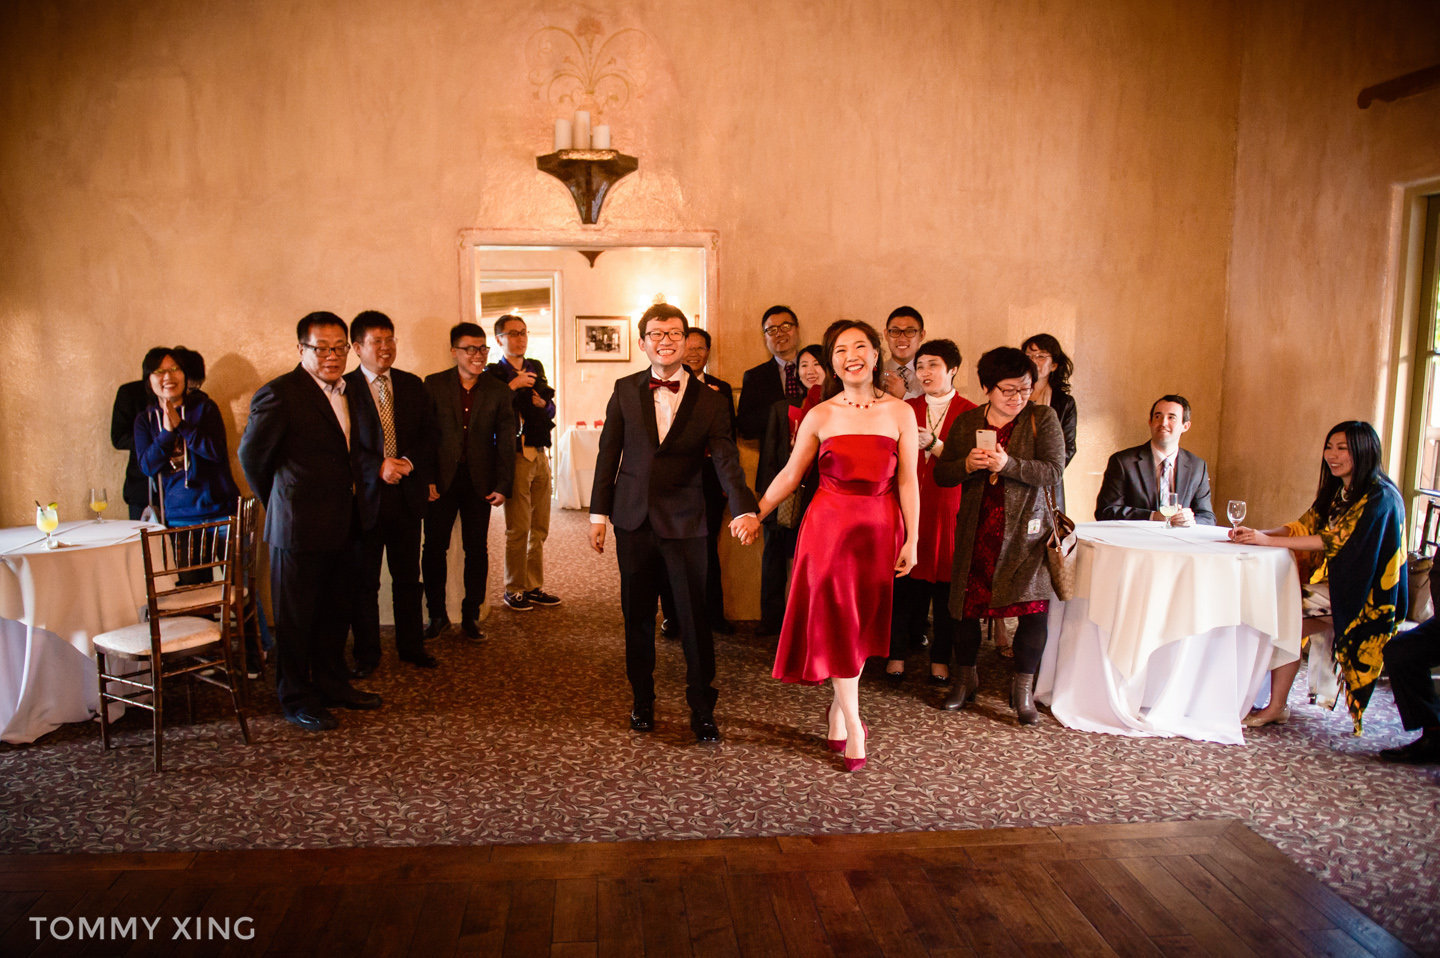 Los Angeles Wedding Photographer 洛杉矶婚礼婚纱摄影师 Tommy Xing-201.JPG